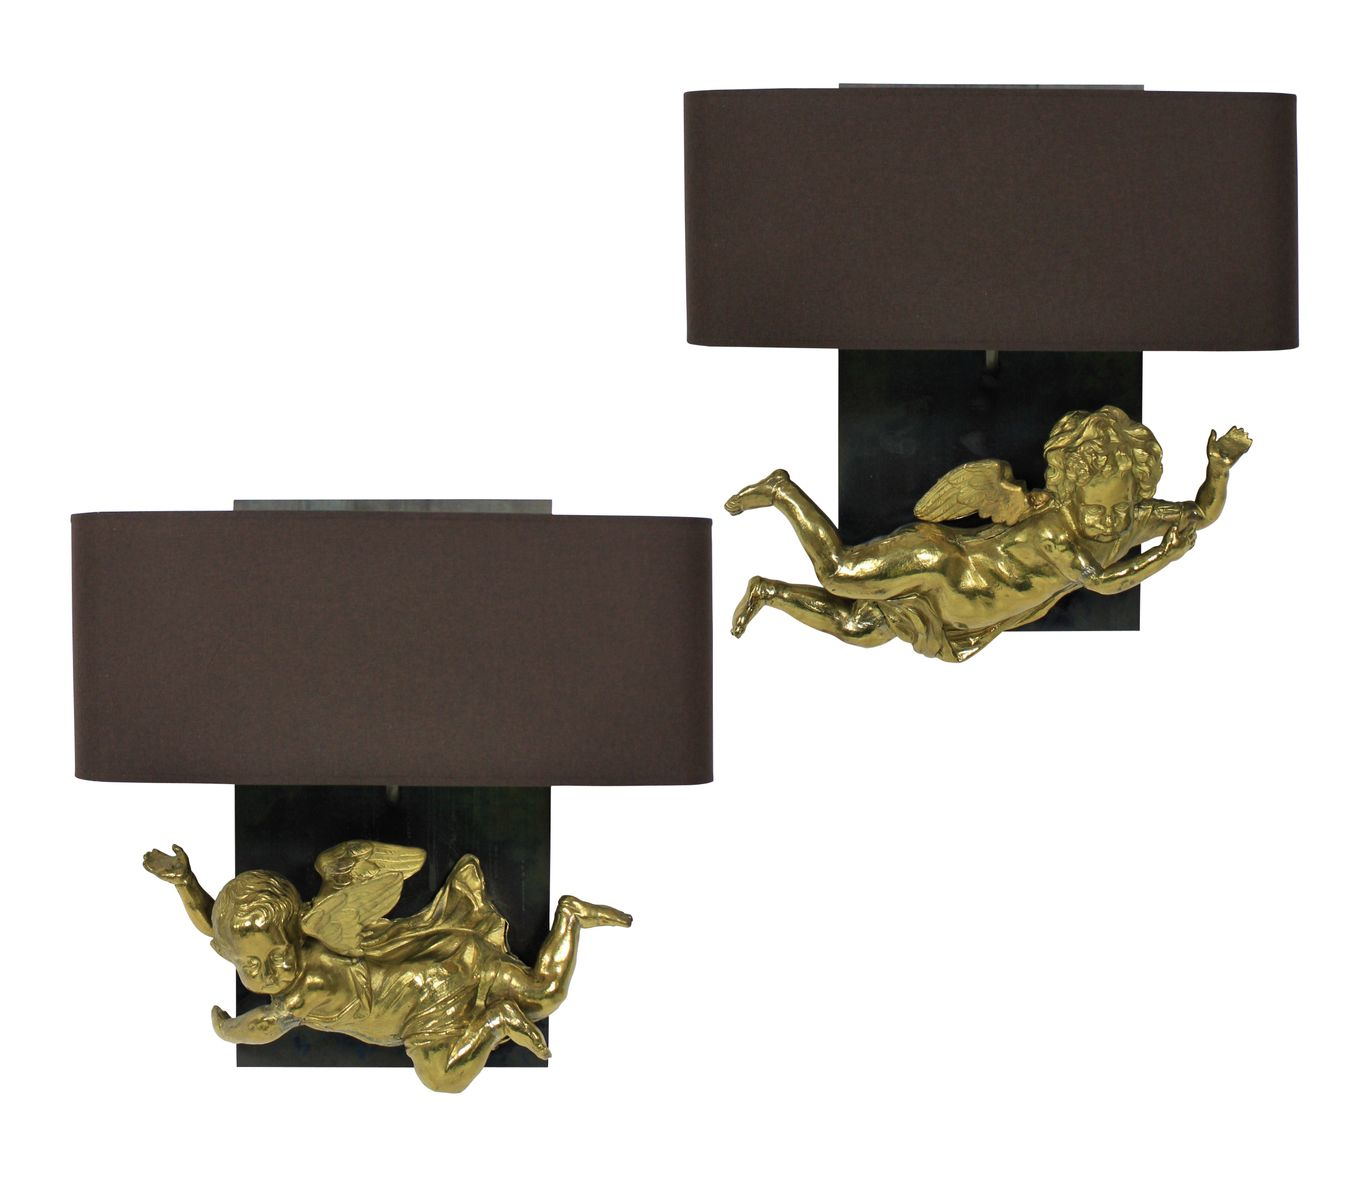 Antique French Cherub Wall Sconces, Set of 2 for sale at Pamono